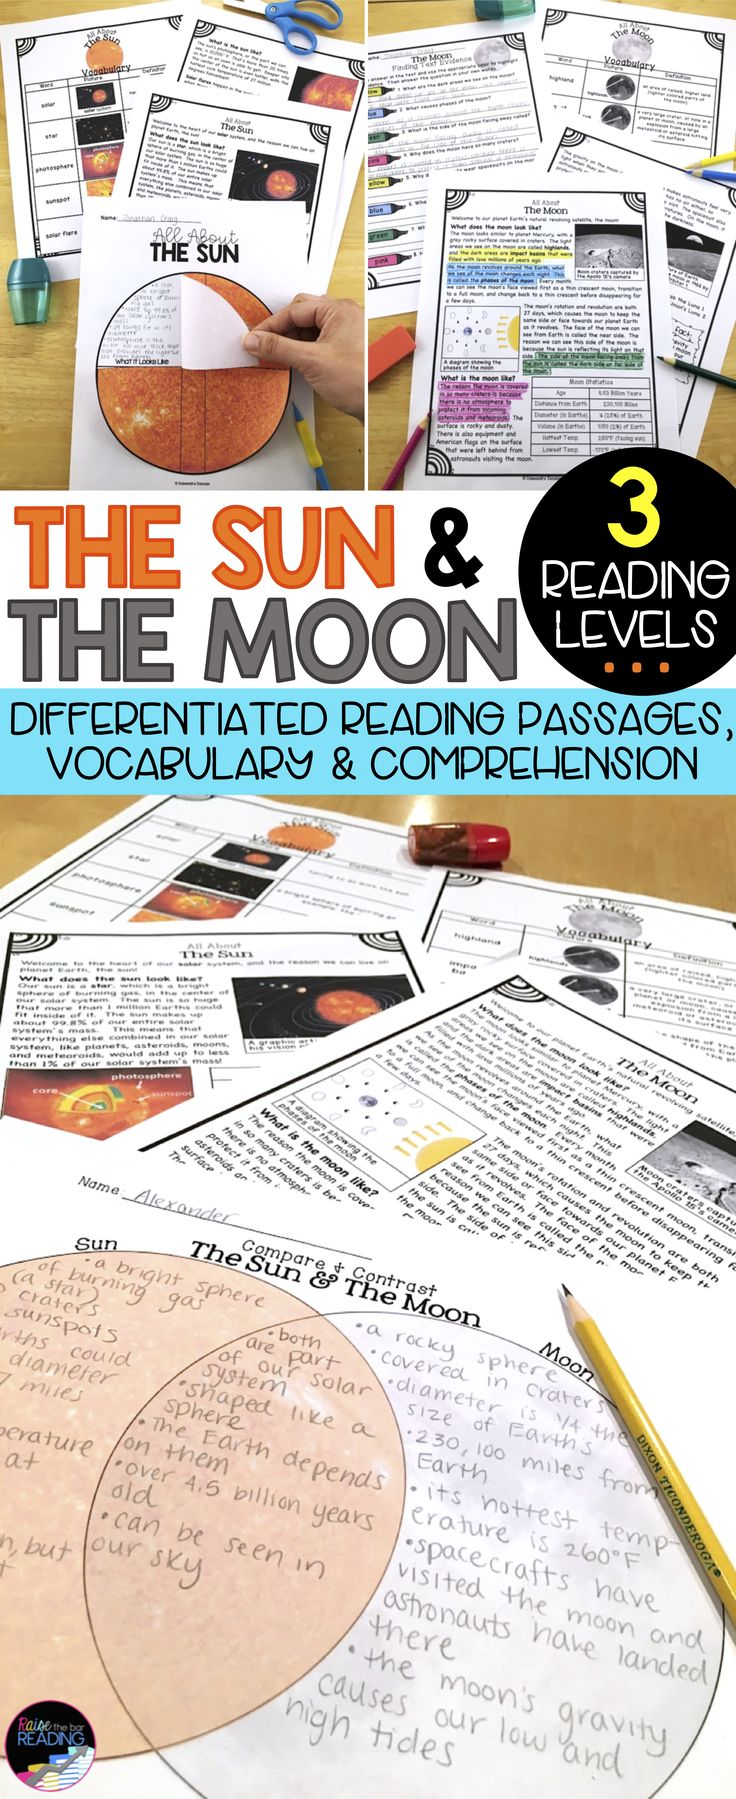 Sun and Moon Compare and Contrast! Differentiated Reading Passages. Perfect for your solar system unit, the moon activities, the sun activities, nonfiction reading, finding text evidence, solar system vocabulary. Includes sun and moon vocabulary, sun and moon crafts, moon and sun foldables, and more!